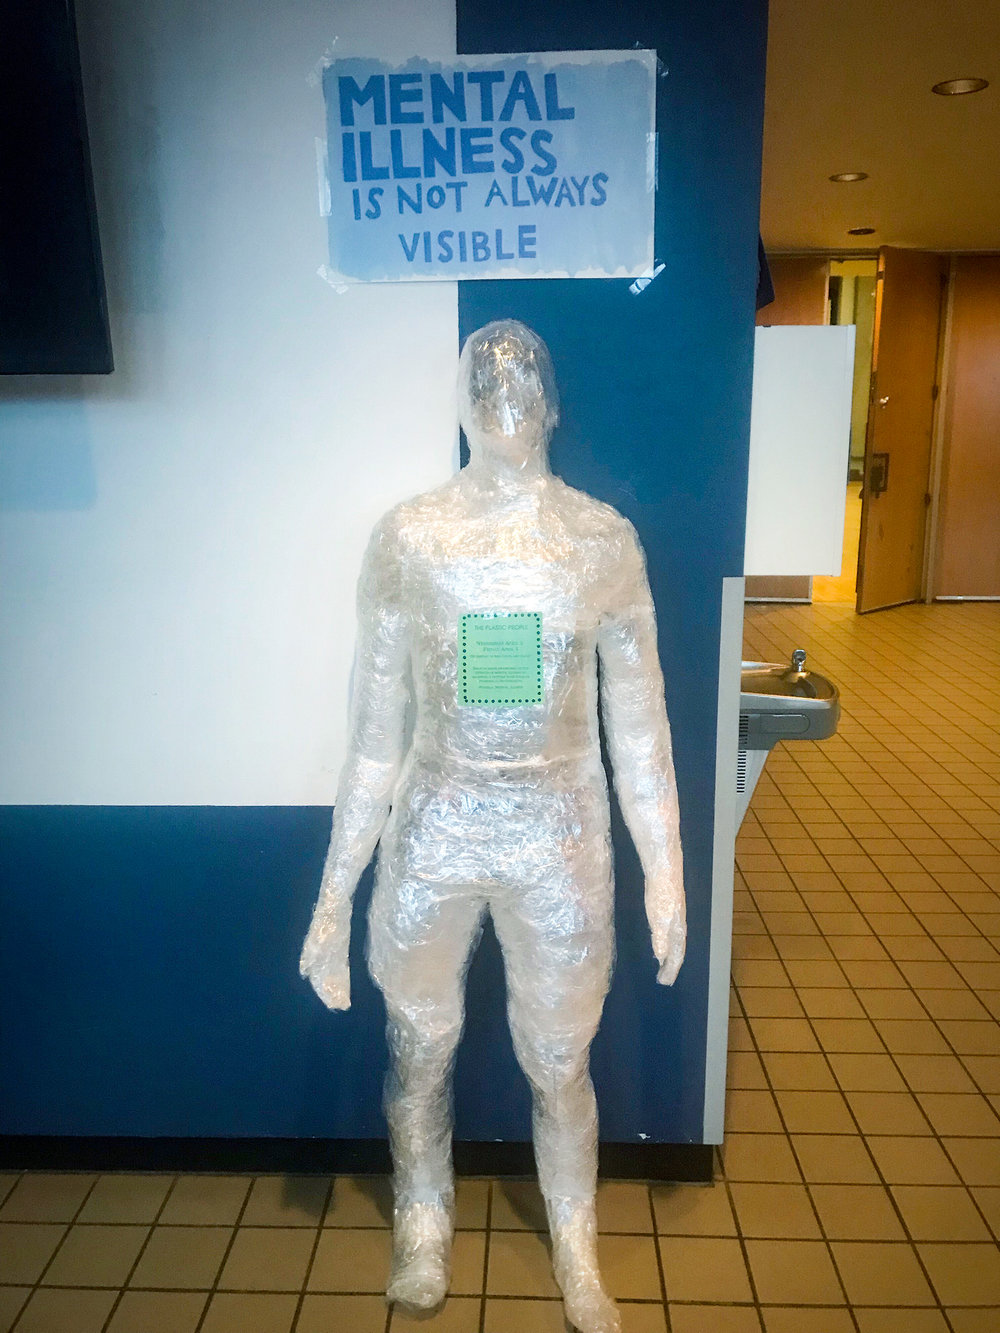 Neuroscience major sophomore Brooke Demetri, international relations major sophomore Jenna Meldrum and neuroscience major sophomore Annika Mounts chose to encourage discussions about mental illness with their honors project. The project involved creating sculptures of human beings from cellophane (pictured above) to represent how mental illness can occur in anyone (courtesy of Annika Mounts).